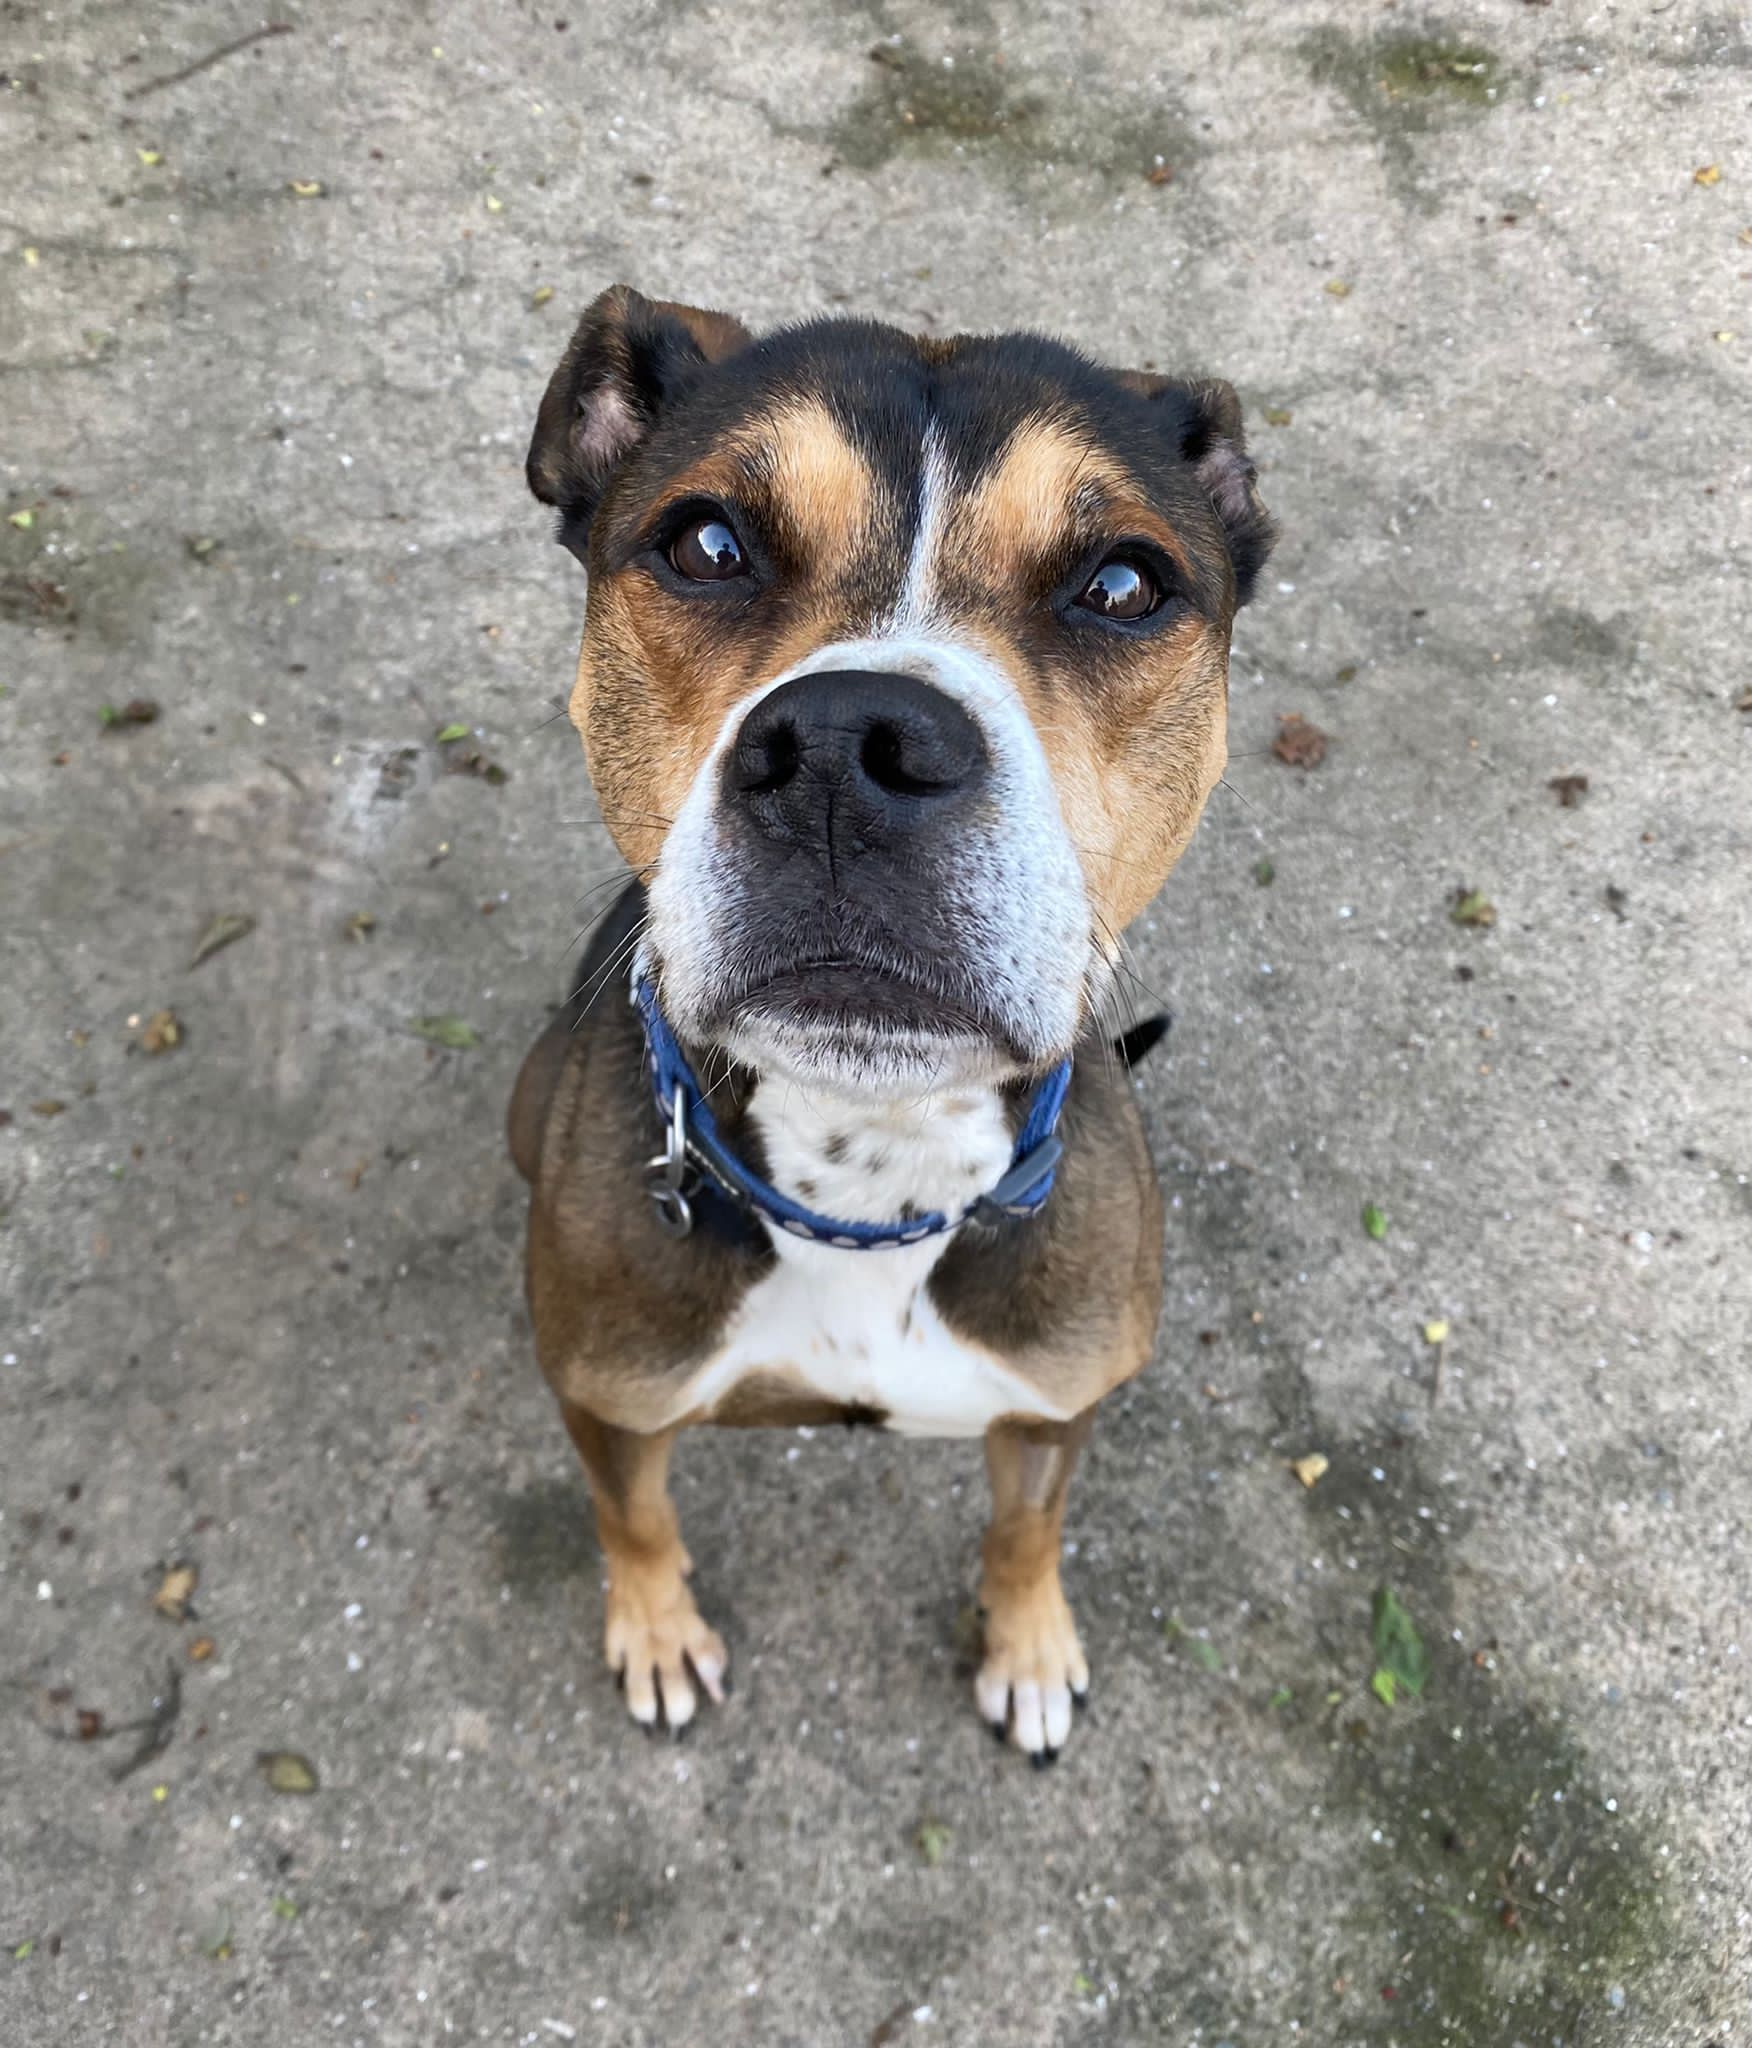 Animal rescue centre desperate to find a home for 'lonely Barney'